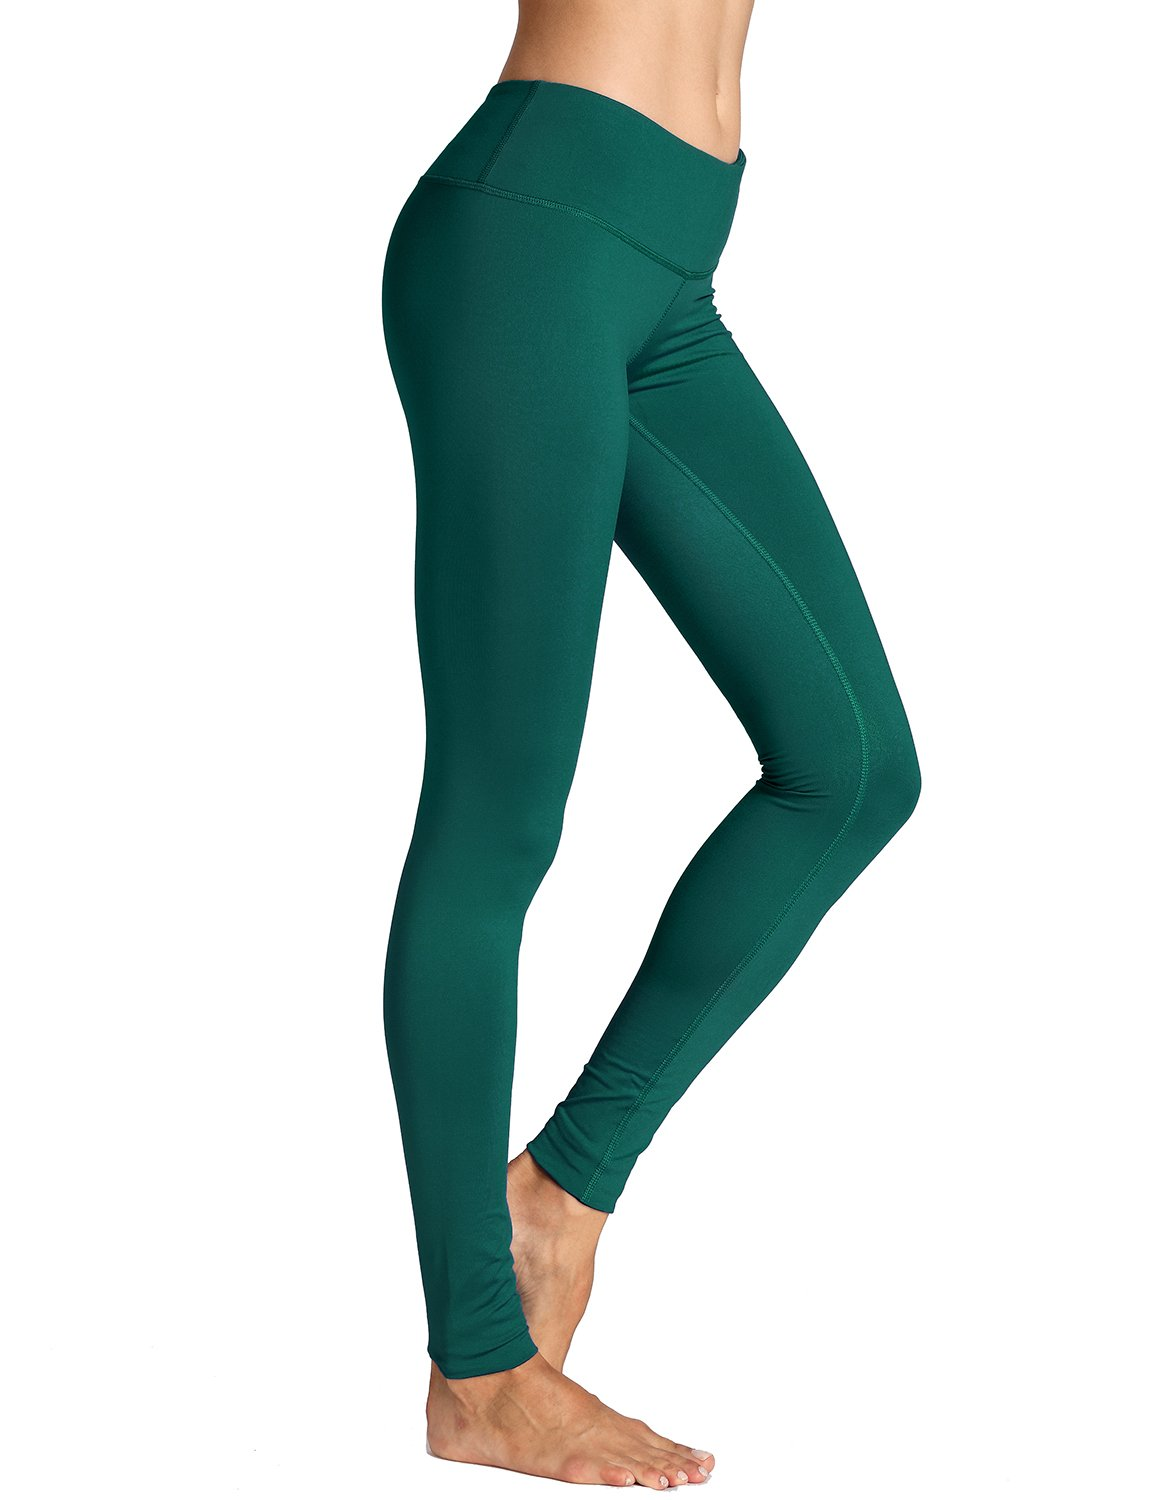 CRZ YOGA Women's Running Tights Workout Leggings Slimming Yoga Pants with Pockets